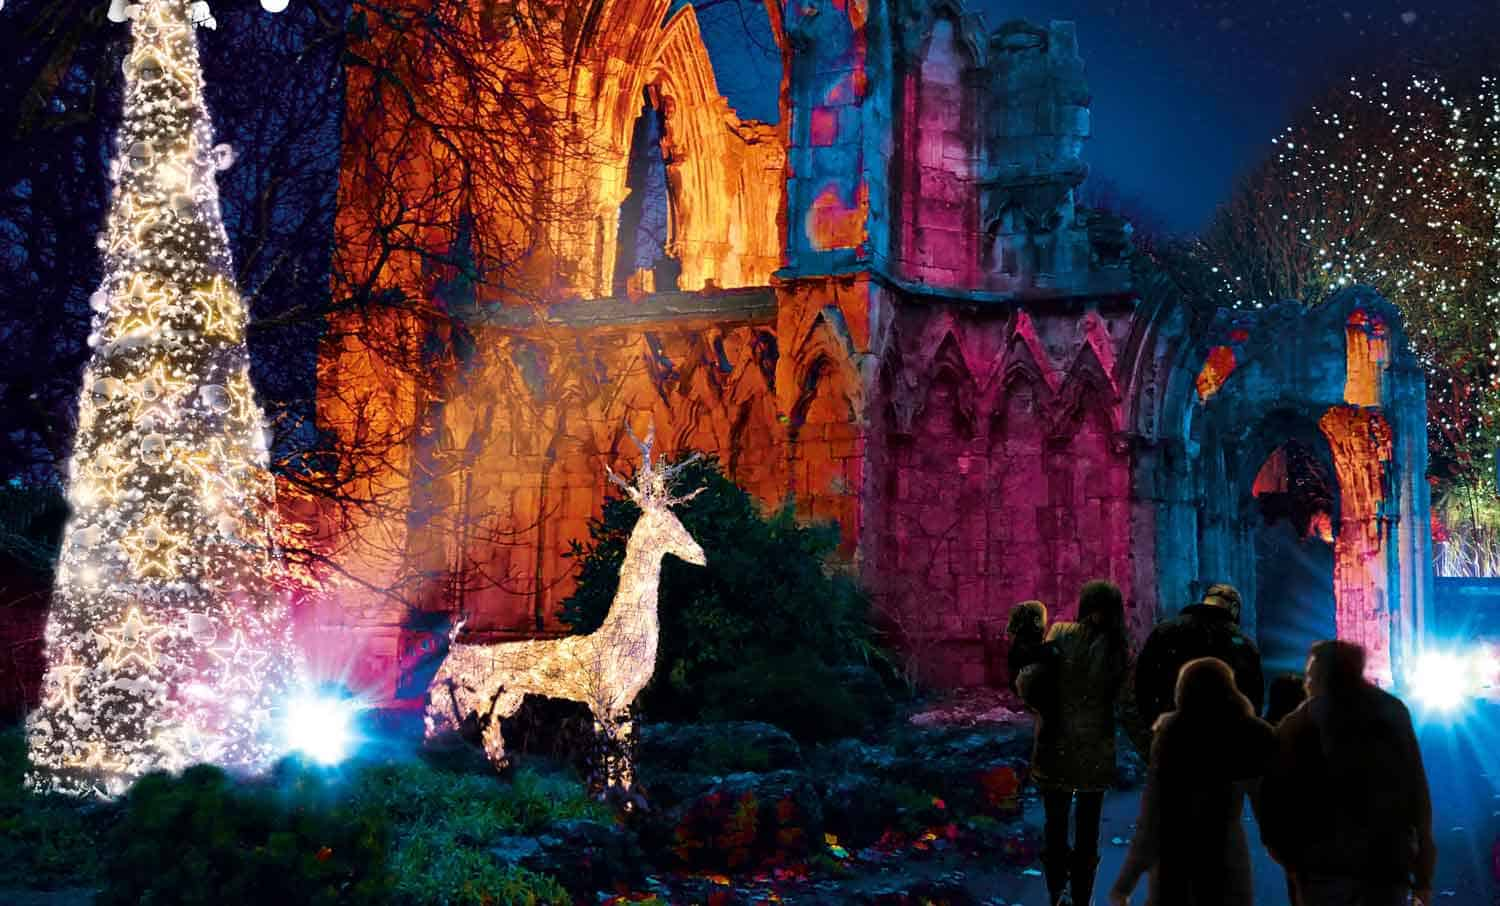 york christmas market 2017. *new* christmas at york museum gardens: illuminated walk and fairy-tale market 2017